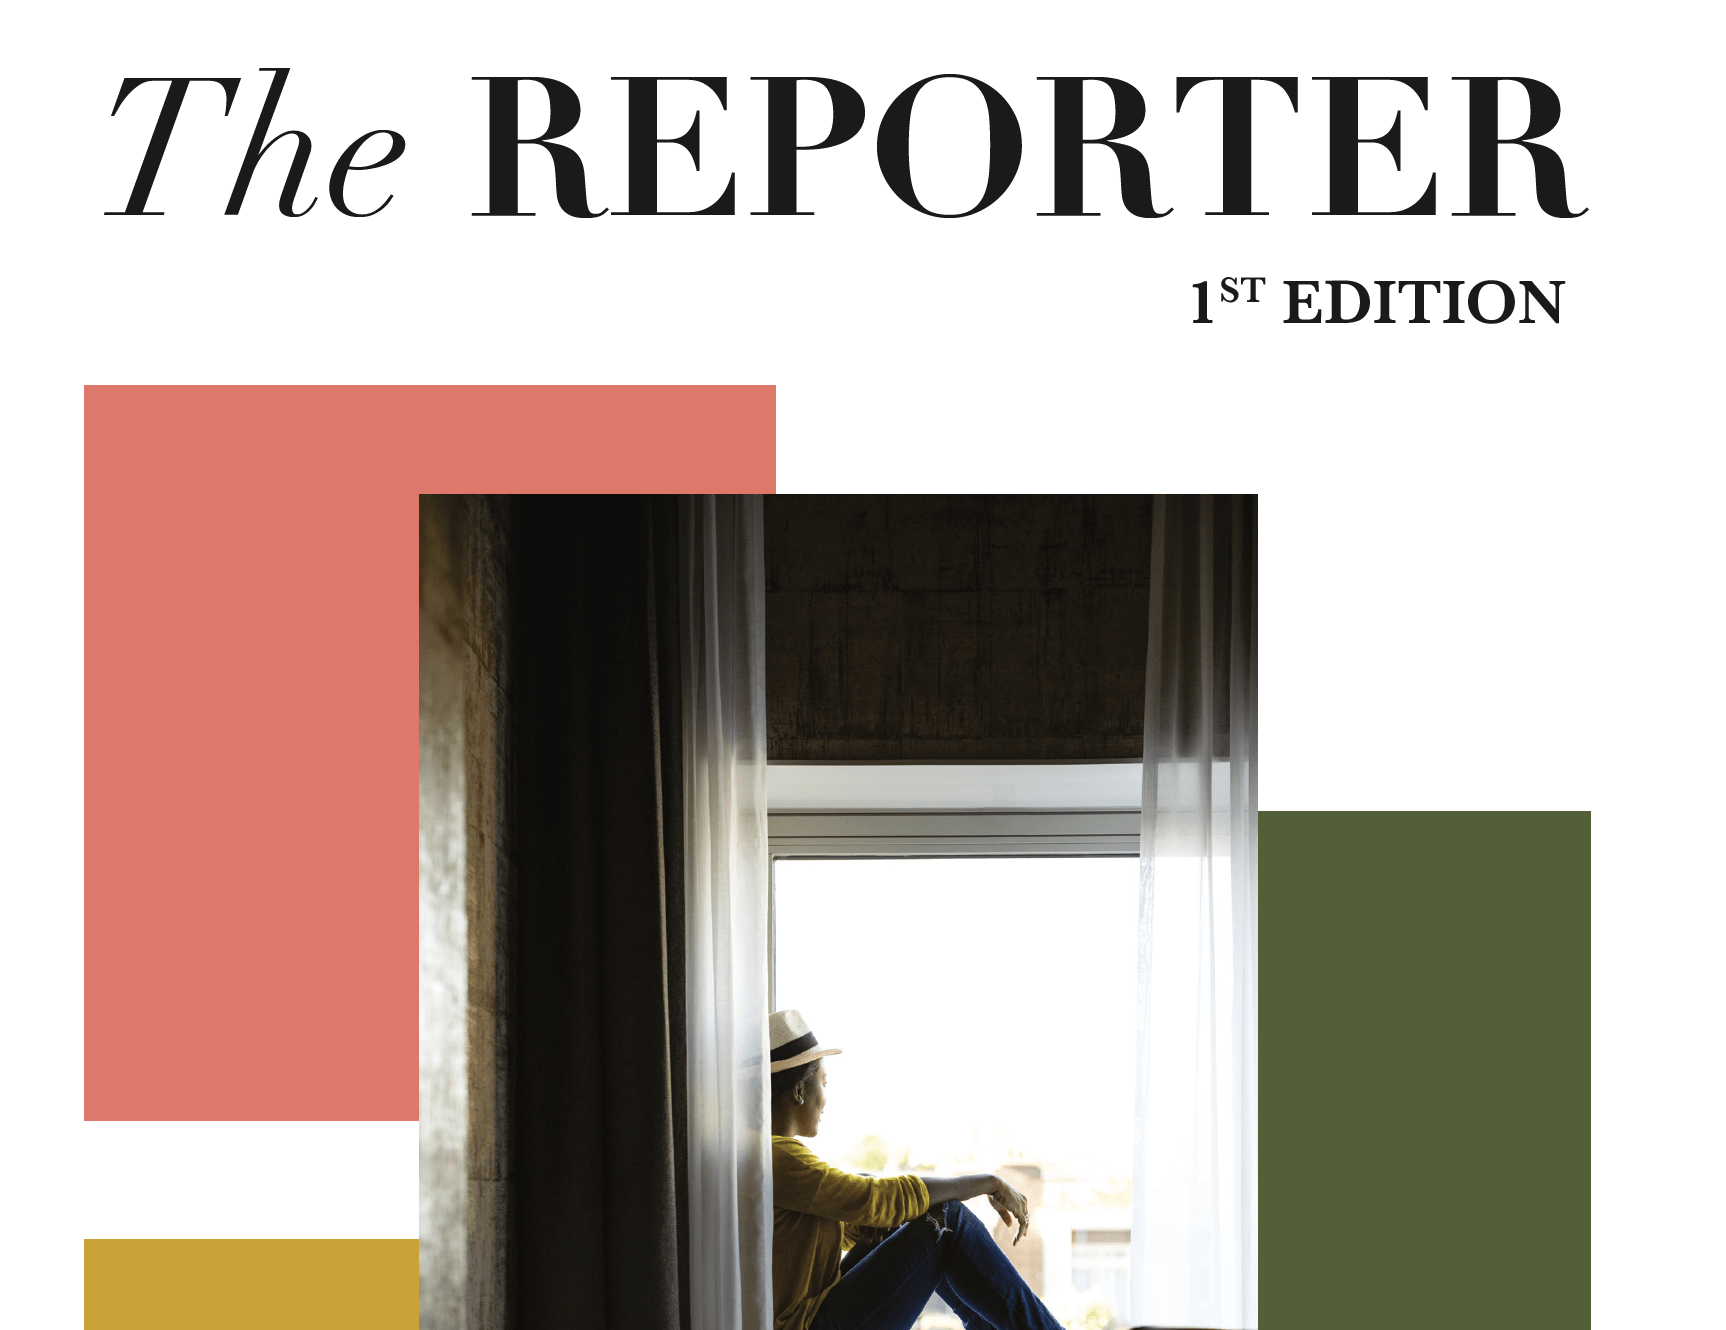 The Reporter 1st edition